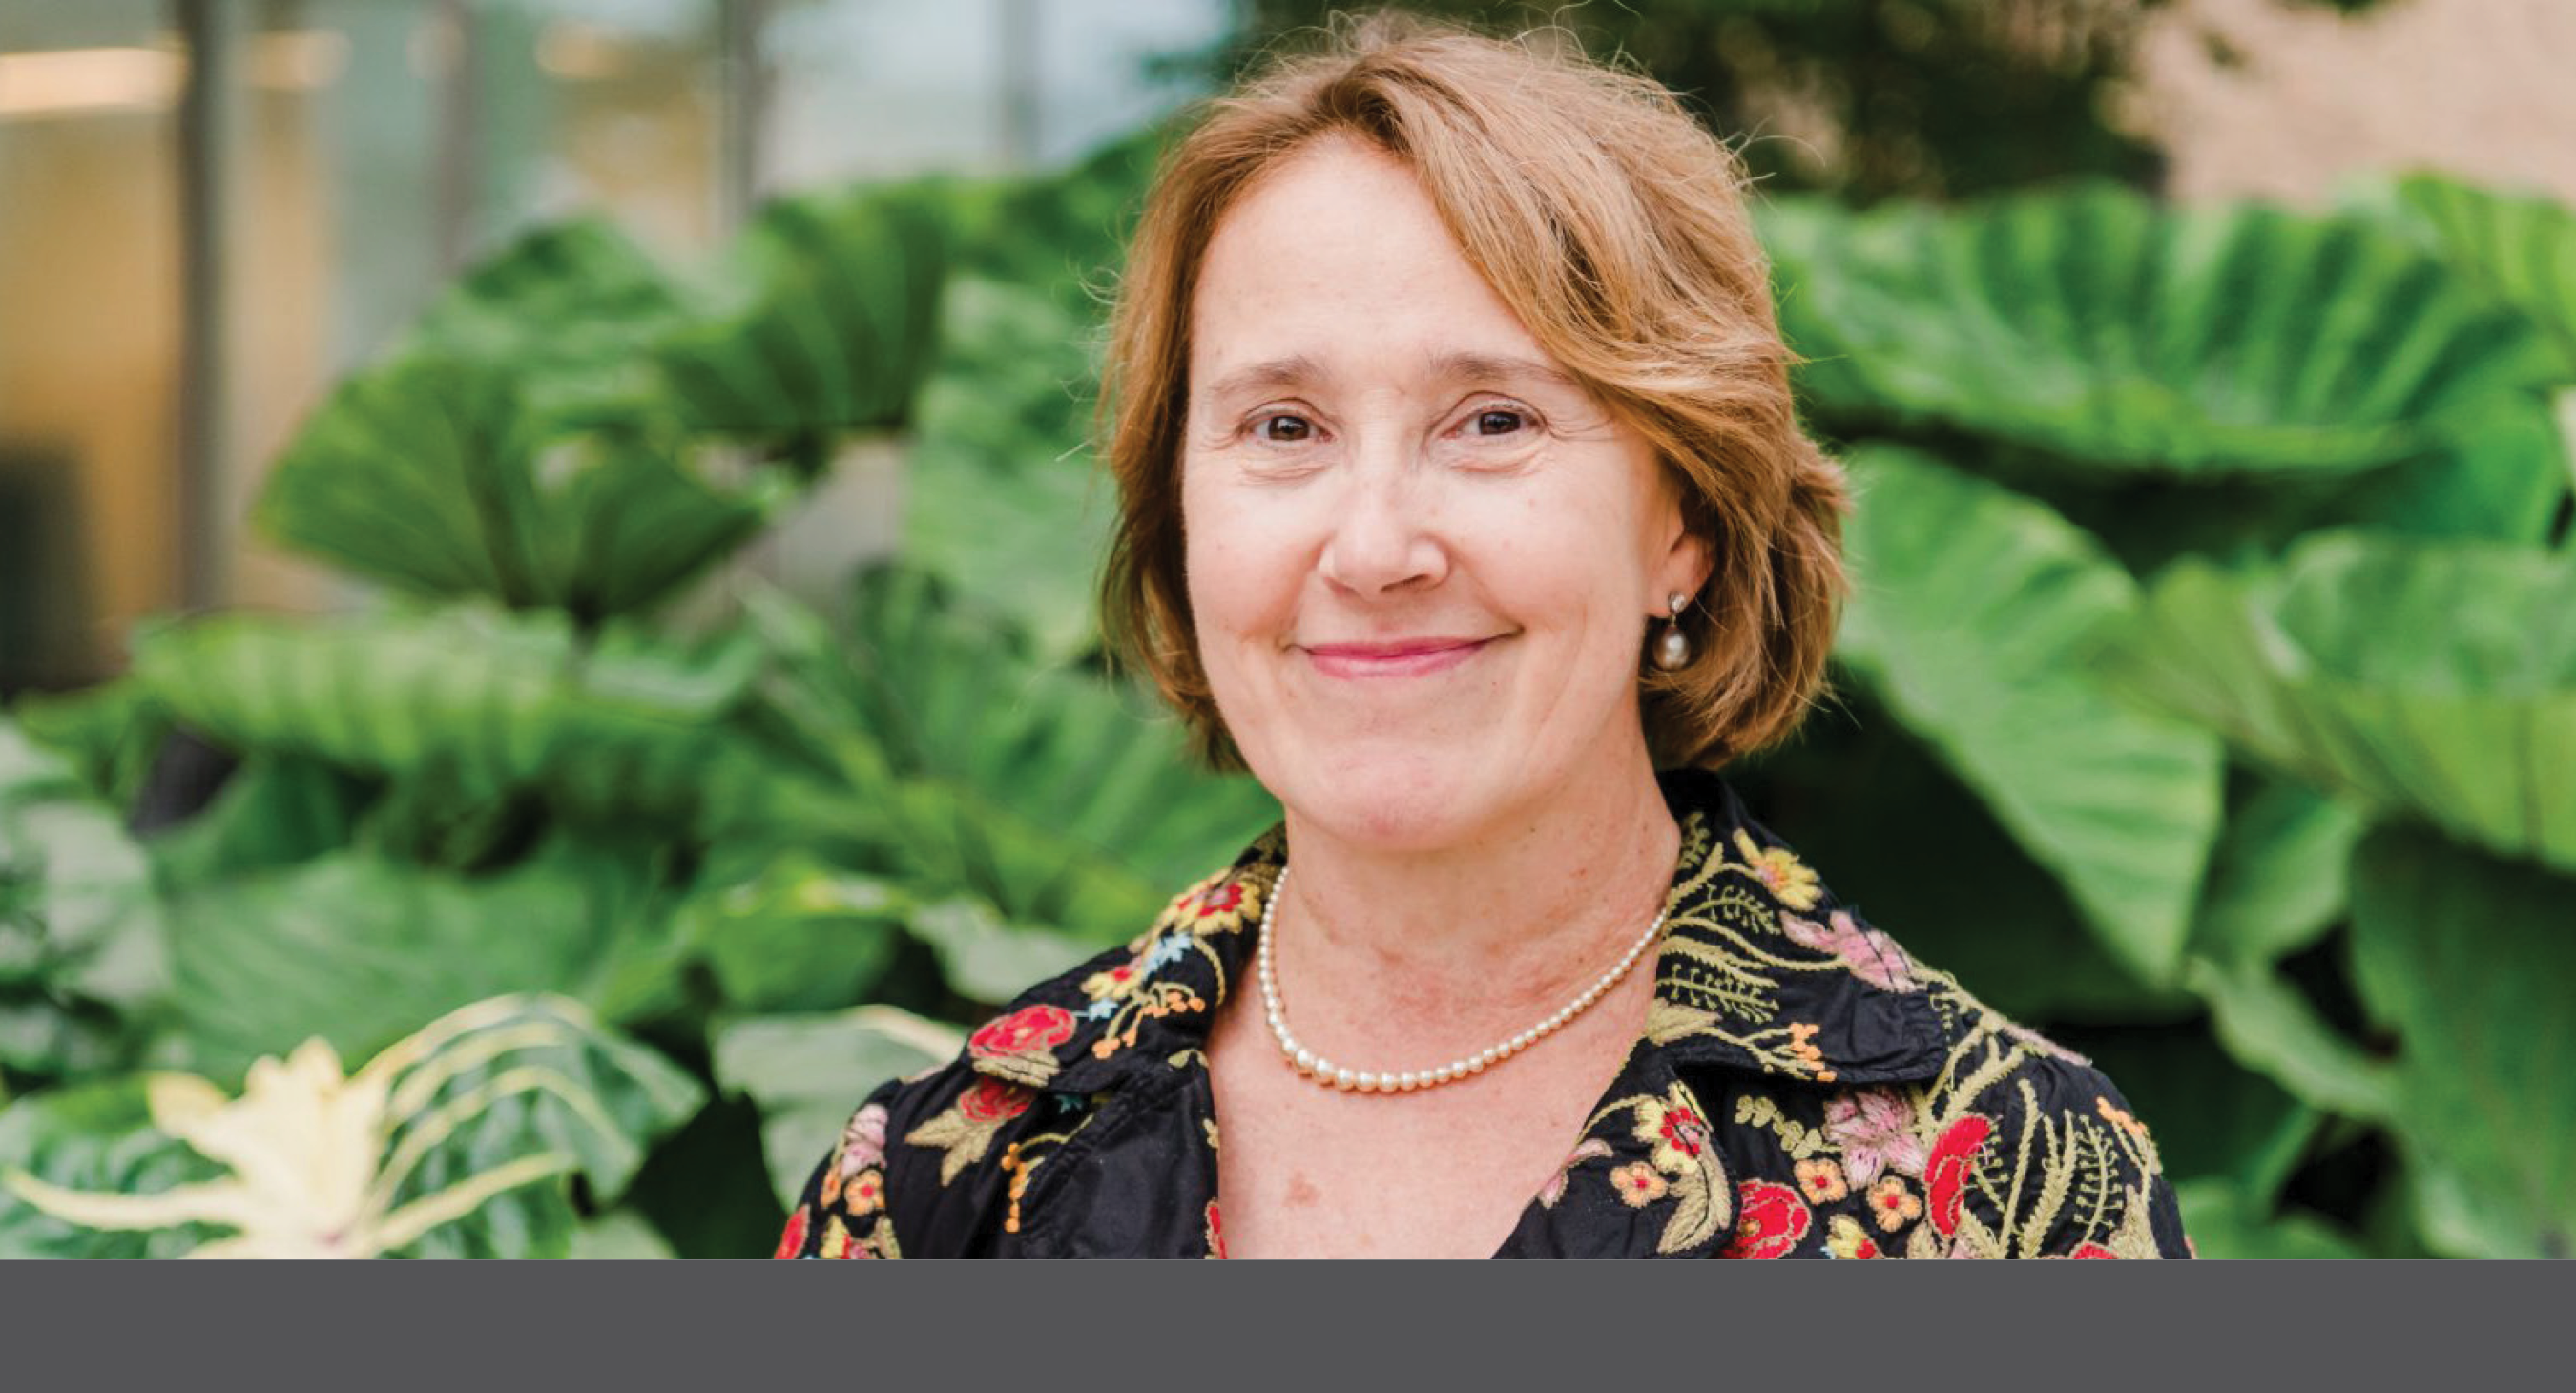 UMBC Welcomes Dana Bradley as New Dean of Erickson School for Aging Services!